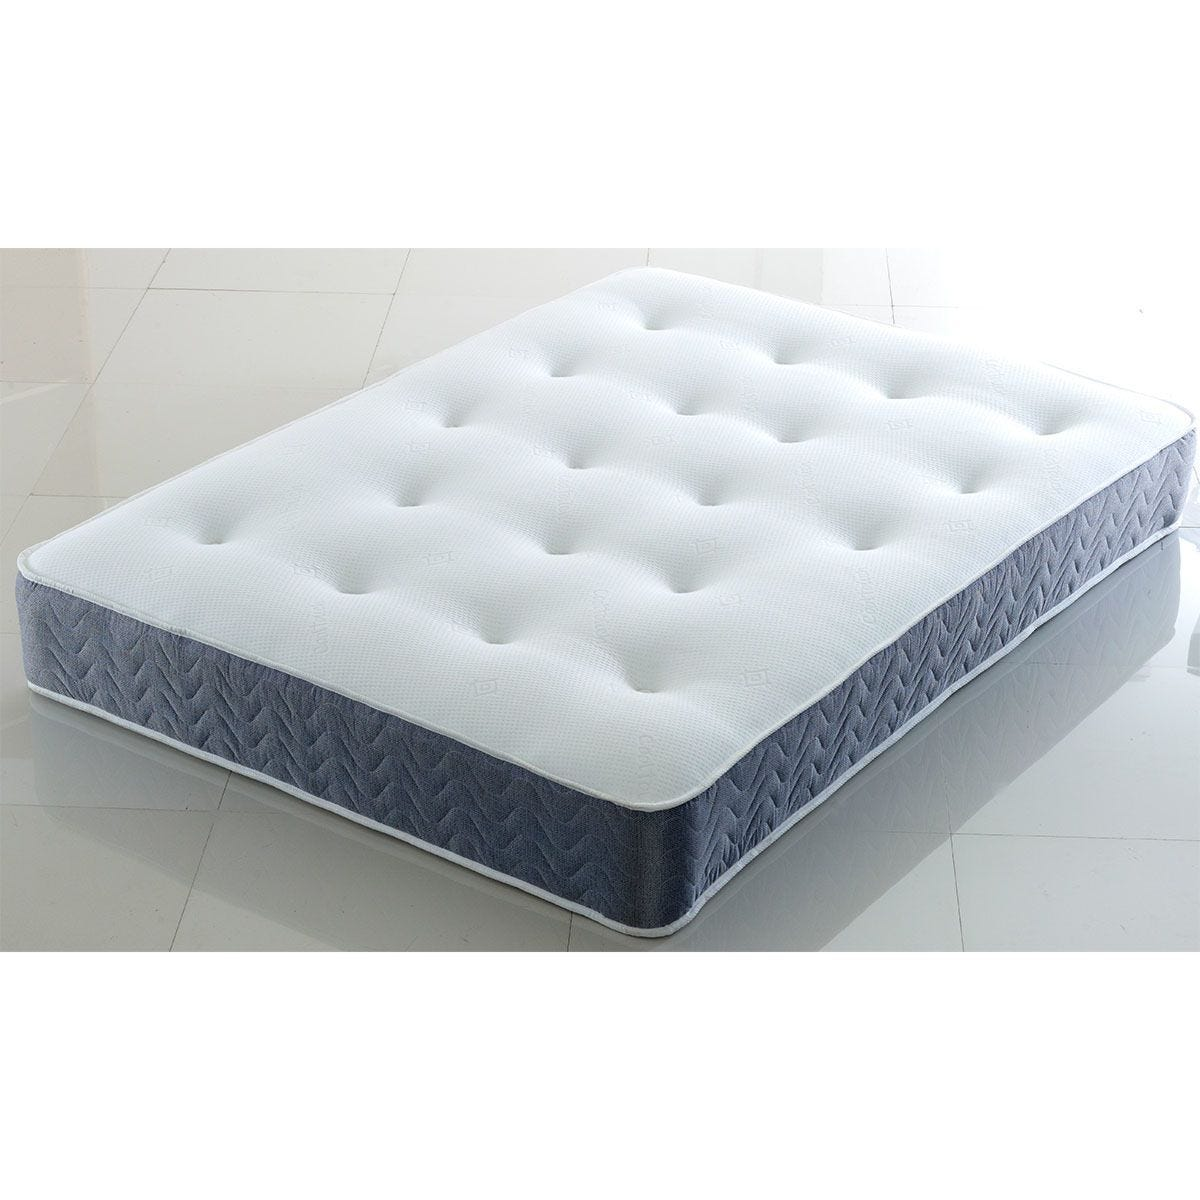 Comfy Deluxe Hand Tufted Orthopaedic Mattress Dual Sided - Grey